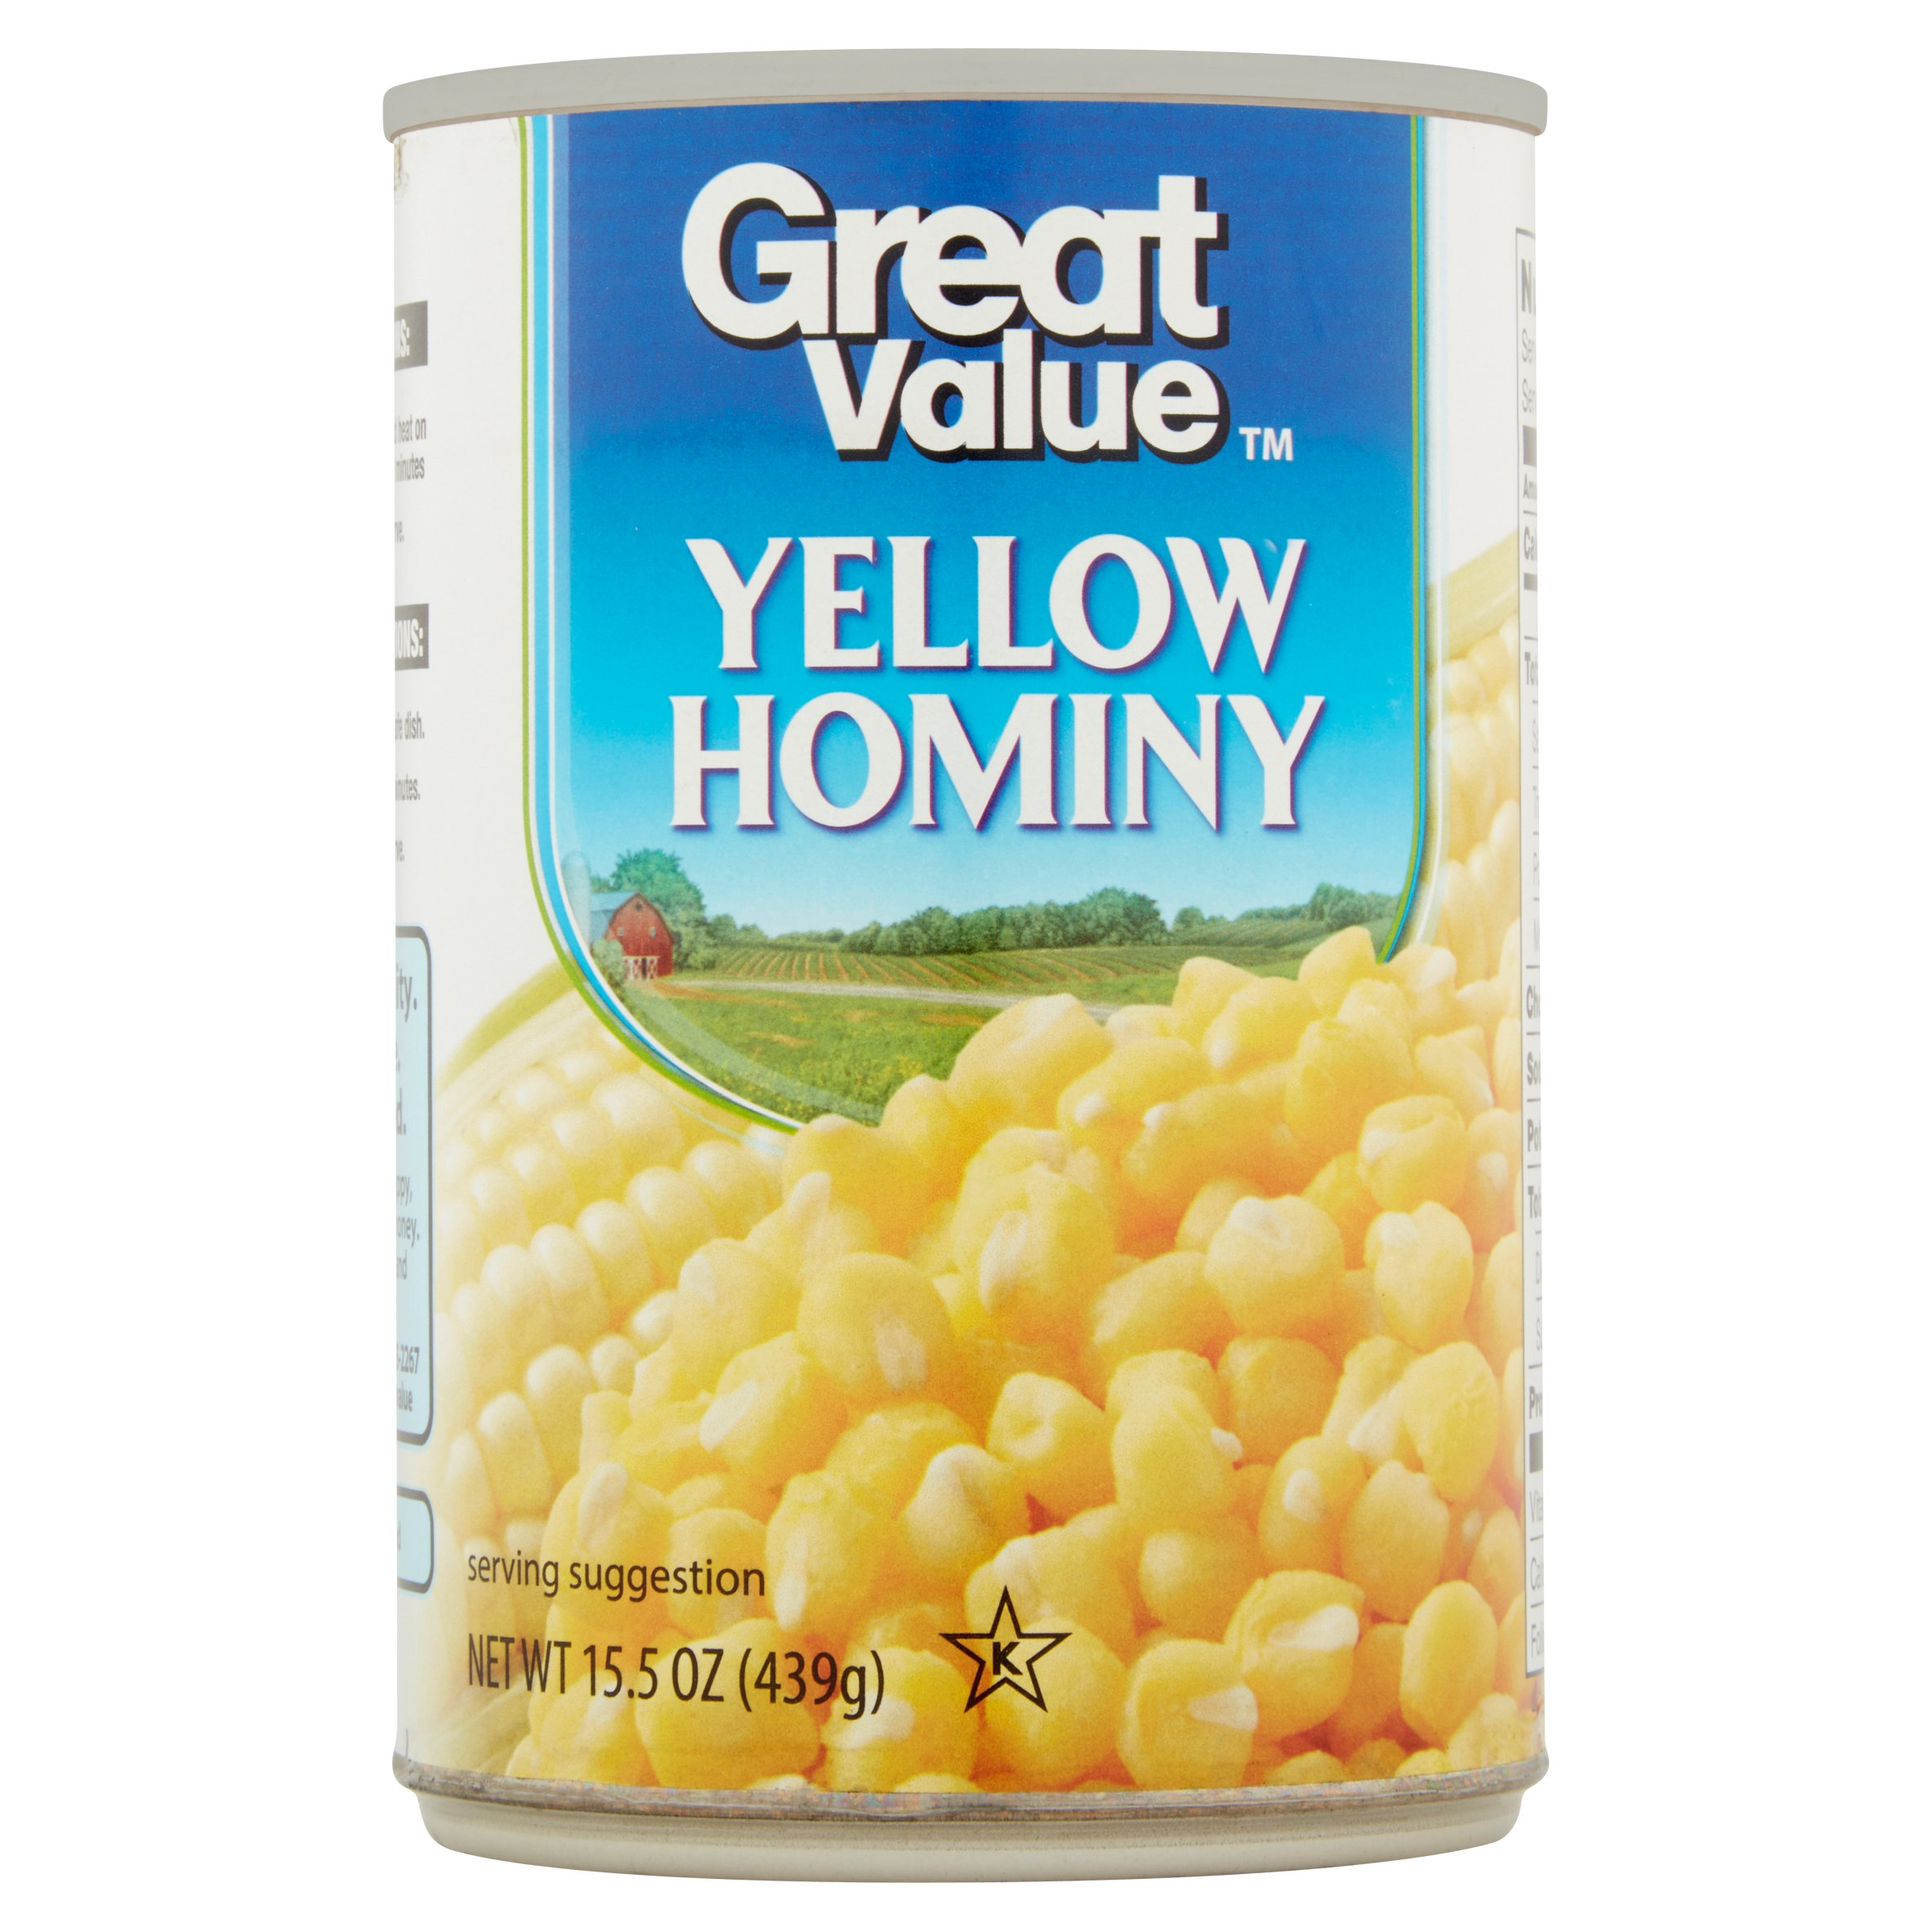 Wal - Mart Stores, Inc. Great Value Yellow Hominy, 15.5 oz